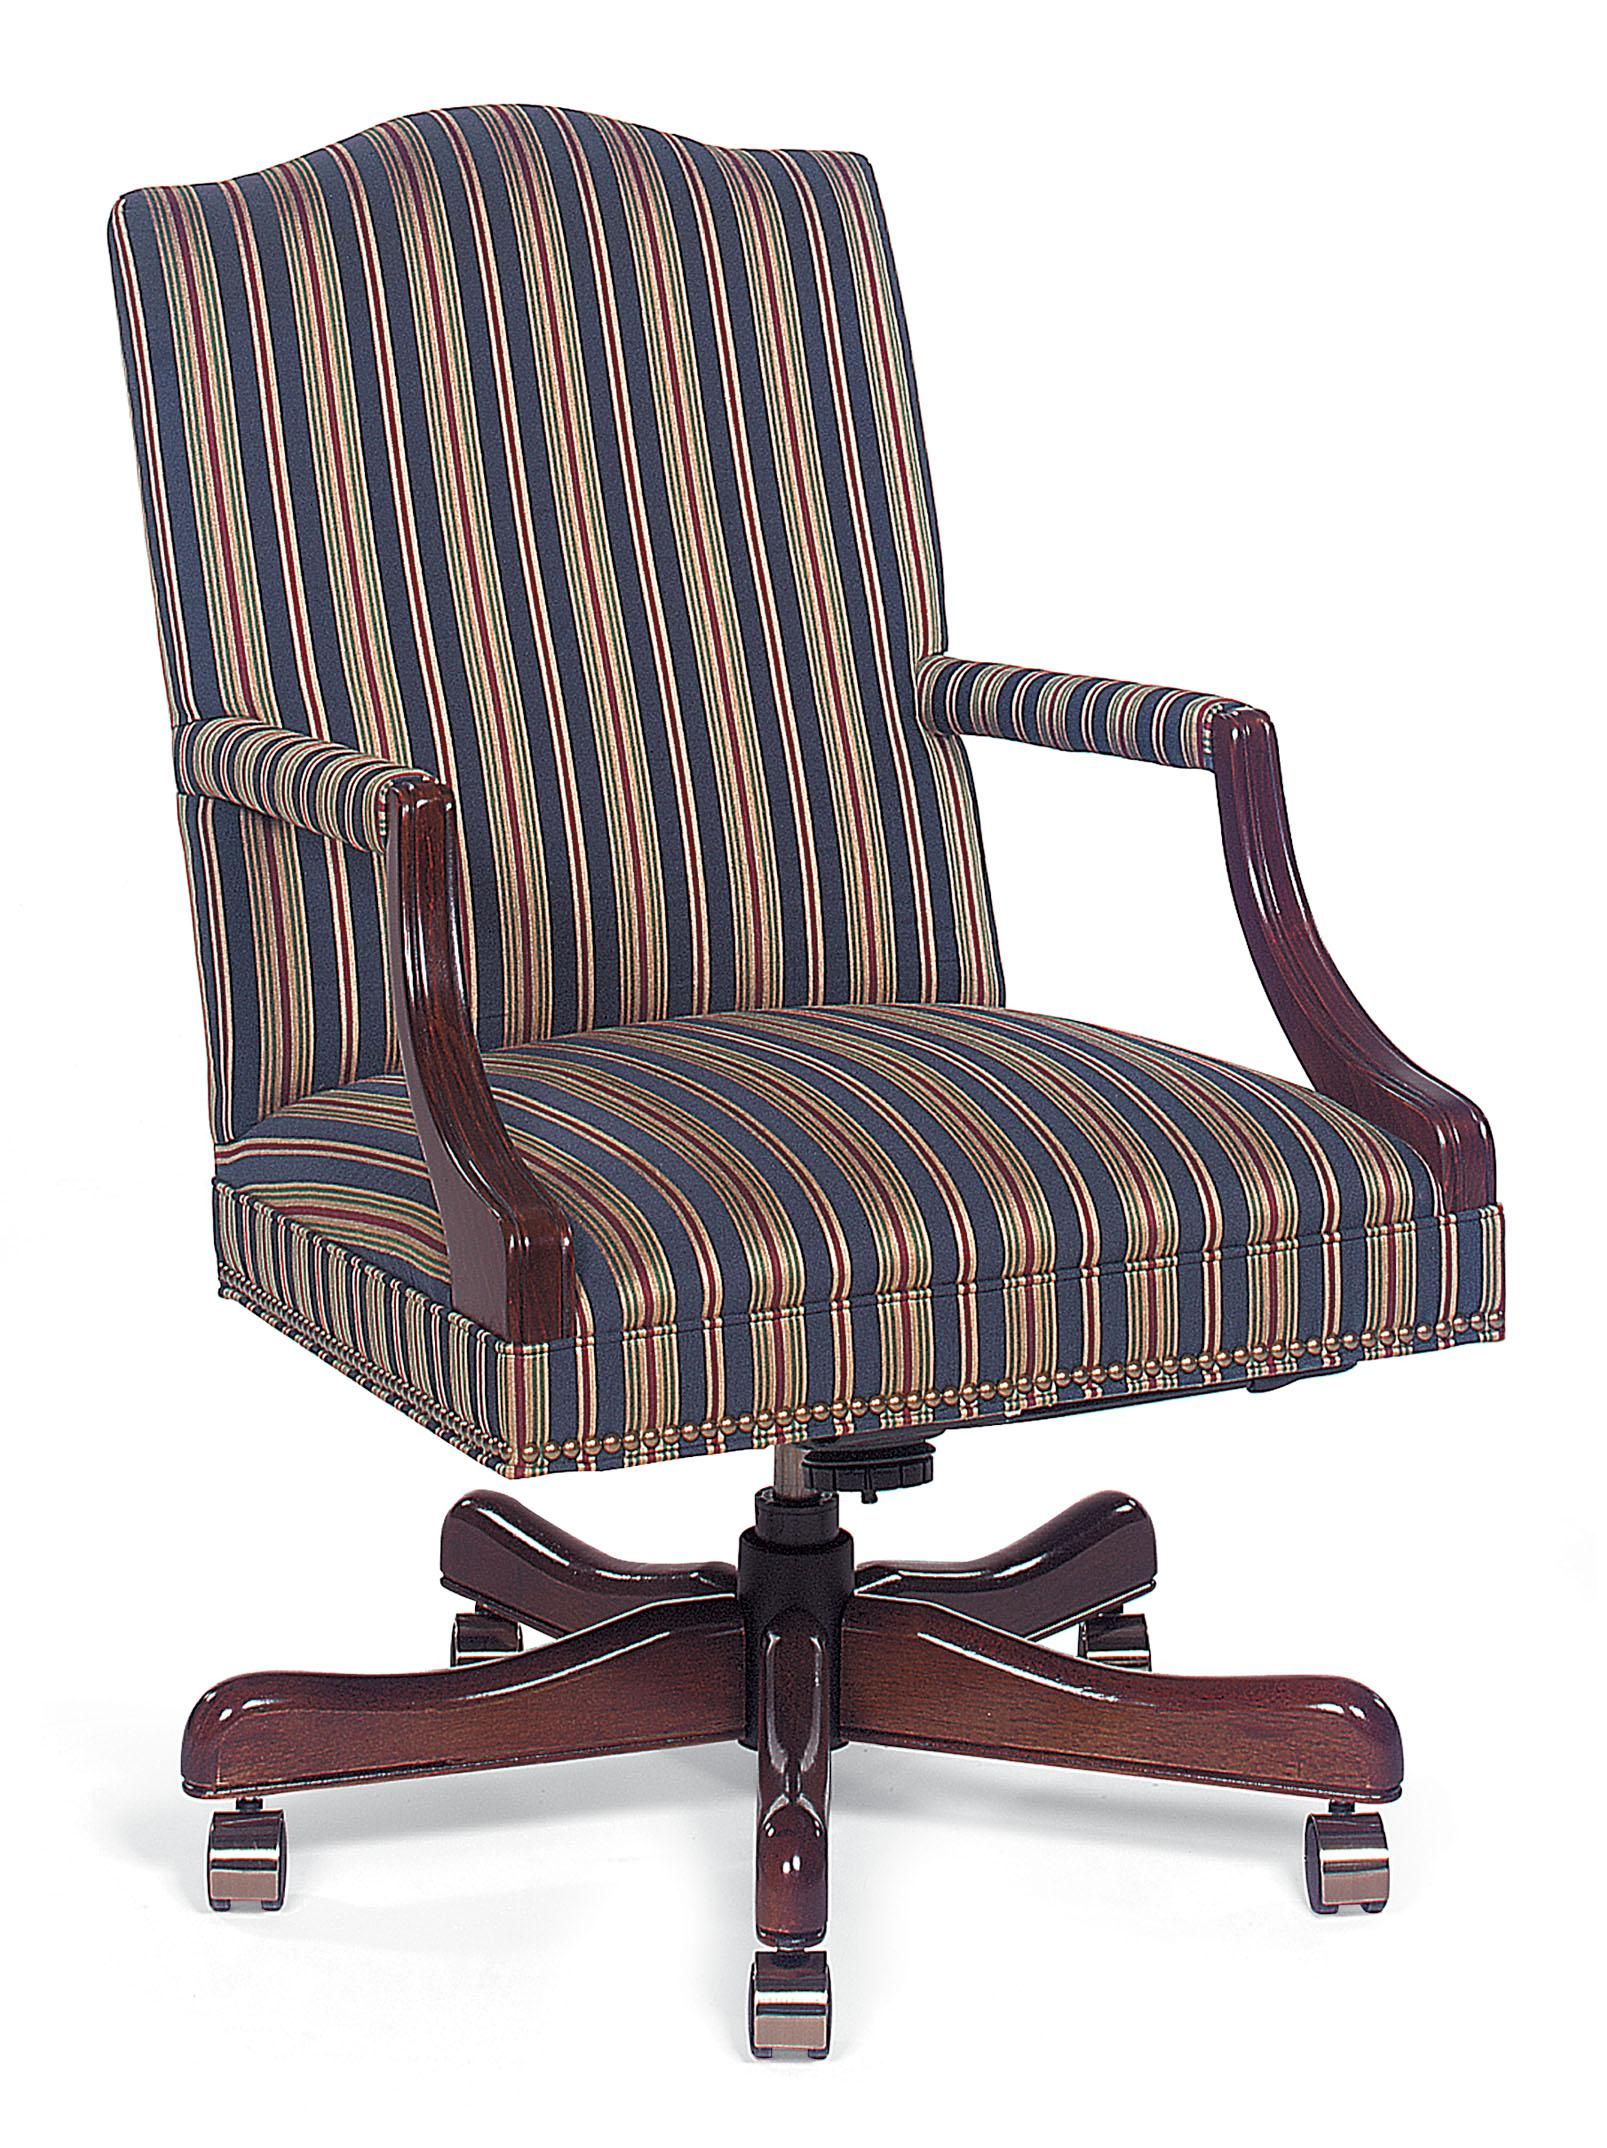 Office Furnishings Executive Swivel Chair by Fairfield at Belfort Furniture